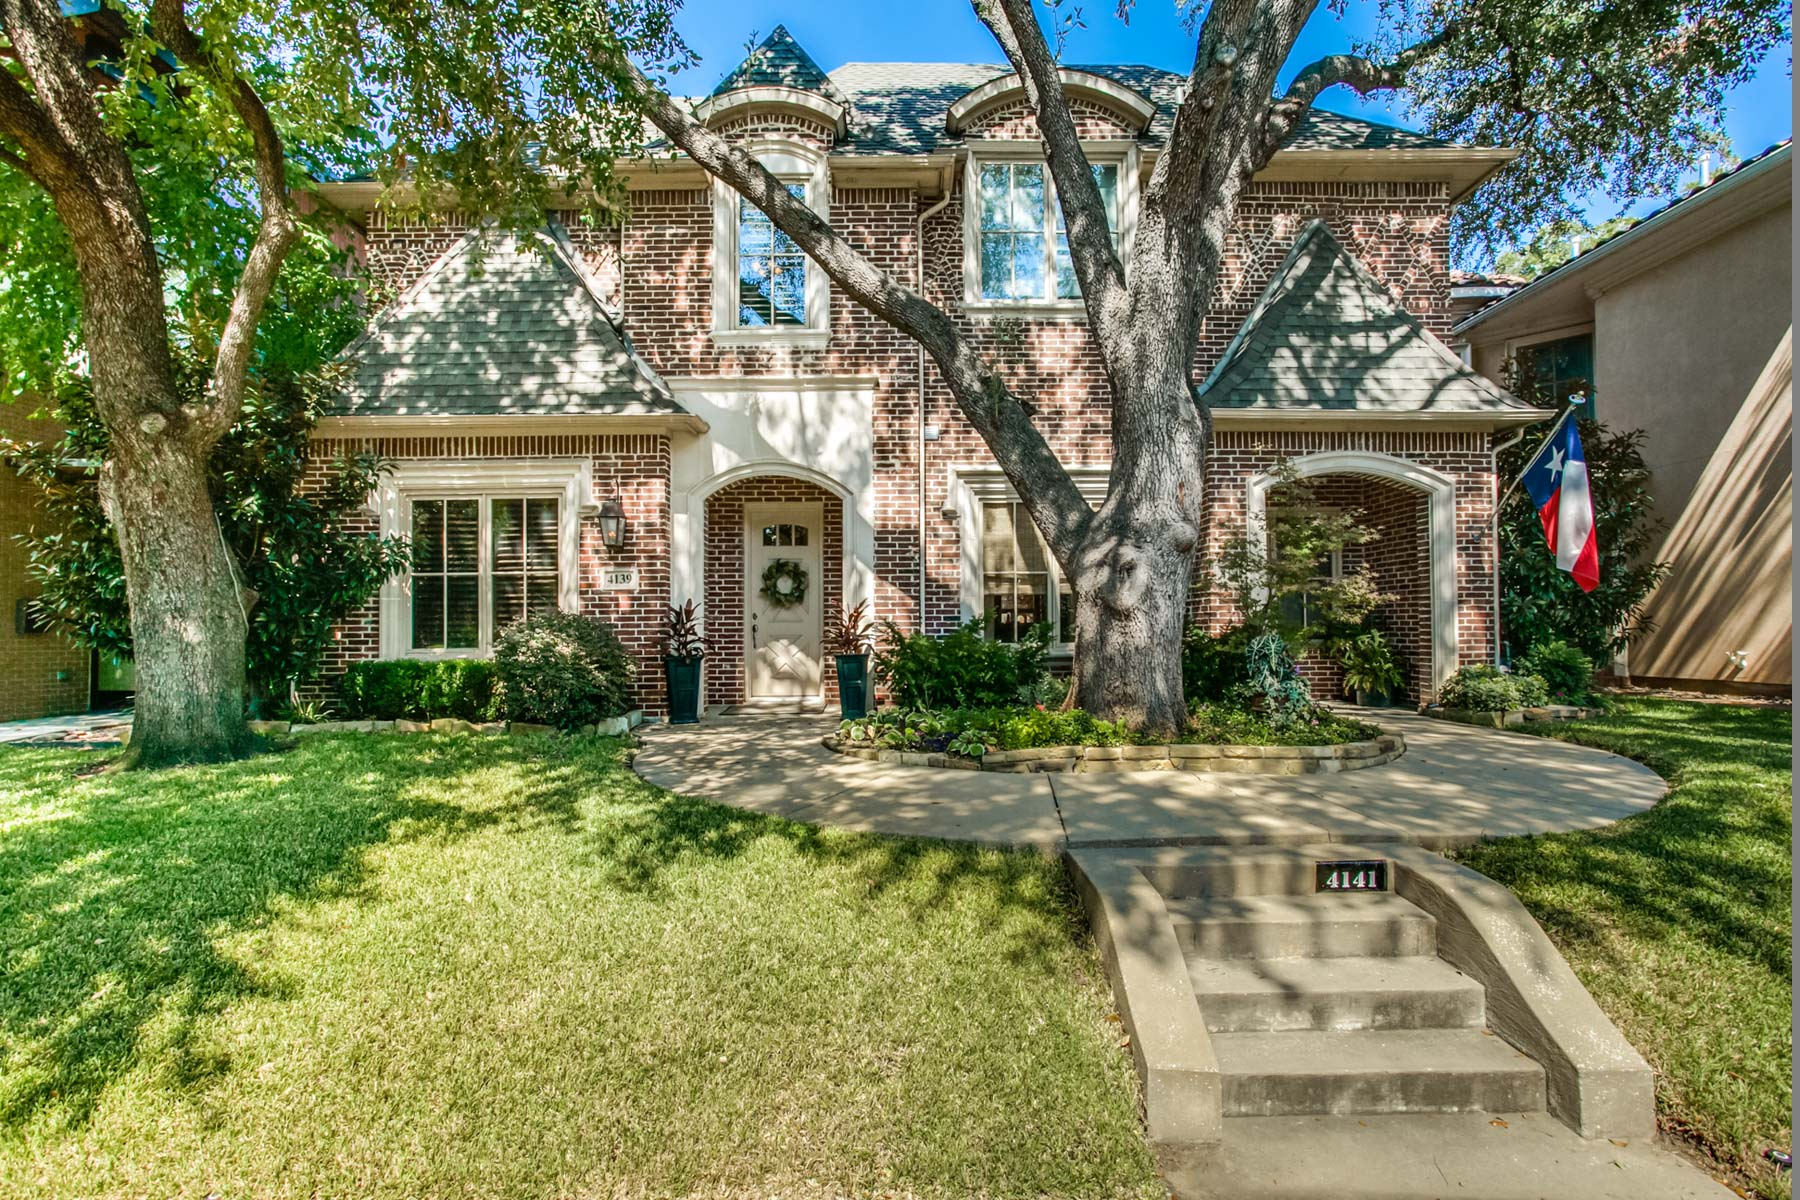 Villa per Vendita alle ore Gorgeous Traditional Single Family Attached in North Oak Lawn 4139 Herschel Avenue Dallas, Texas, 75219 Stati Uniti